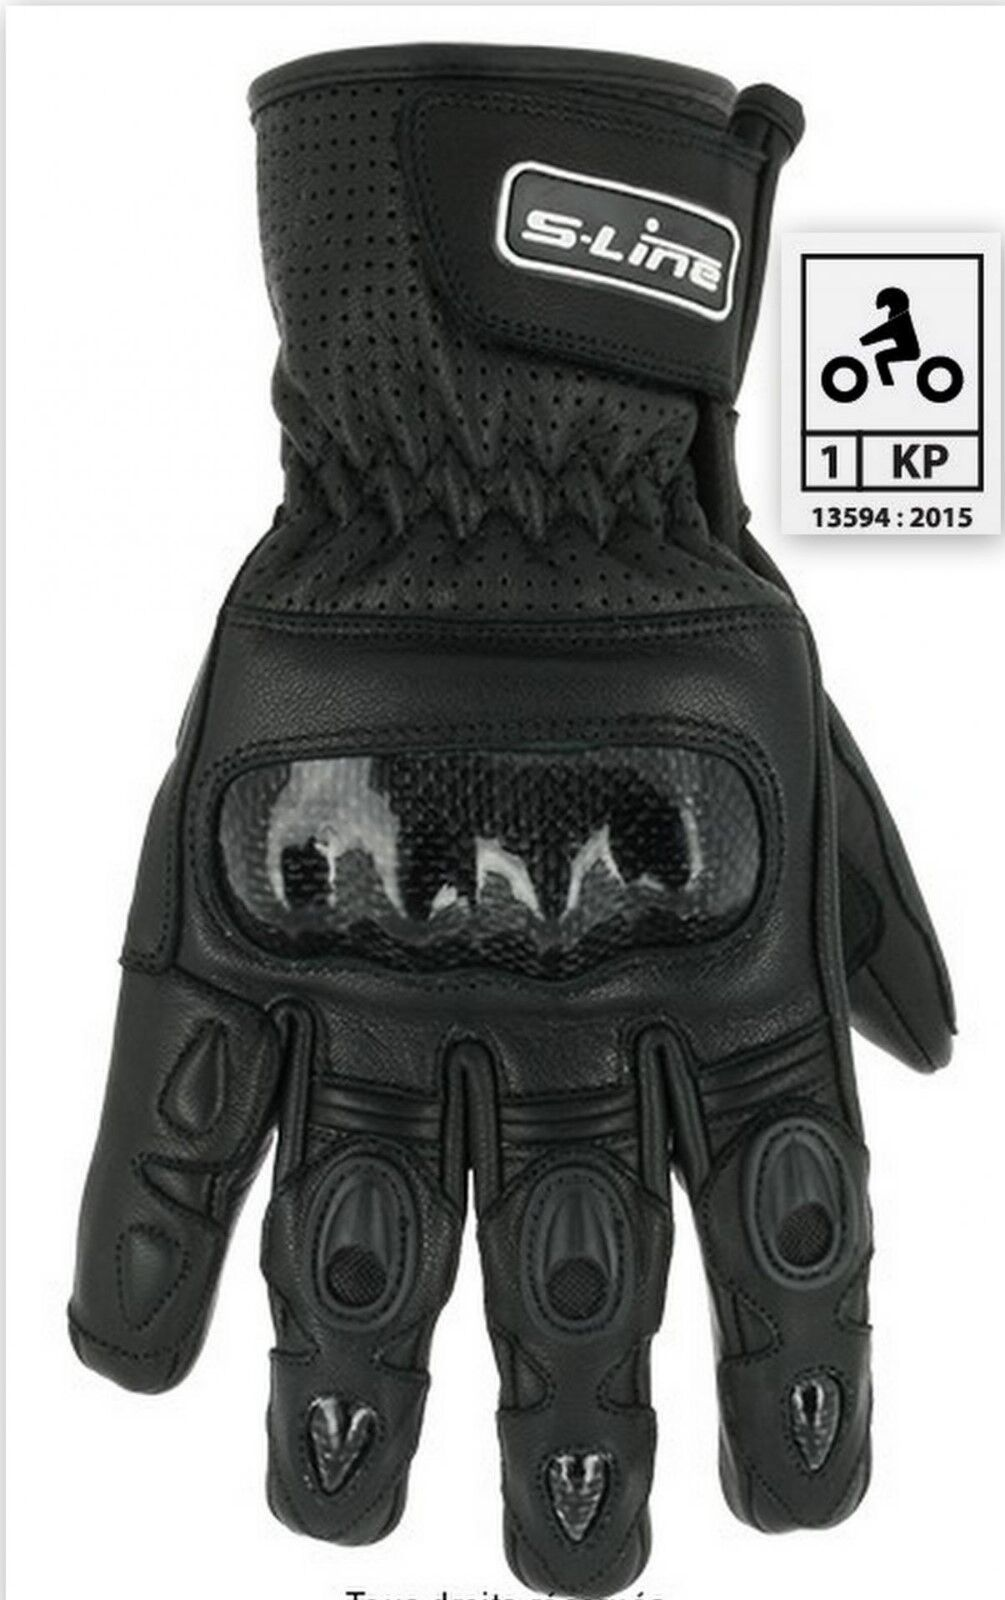 Guantes invierno  bicicleta de route homologado 500 Tamaño black L  choices with low price